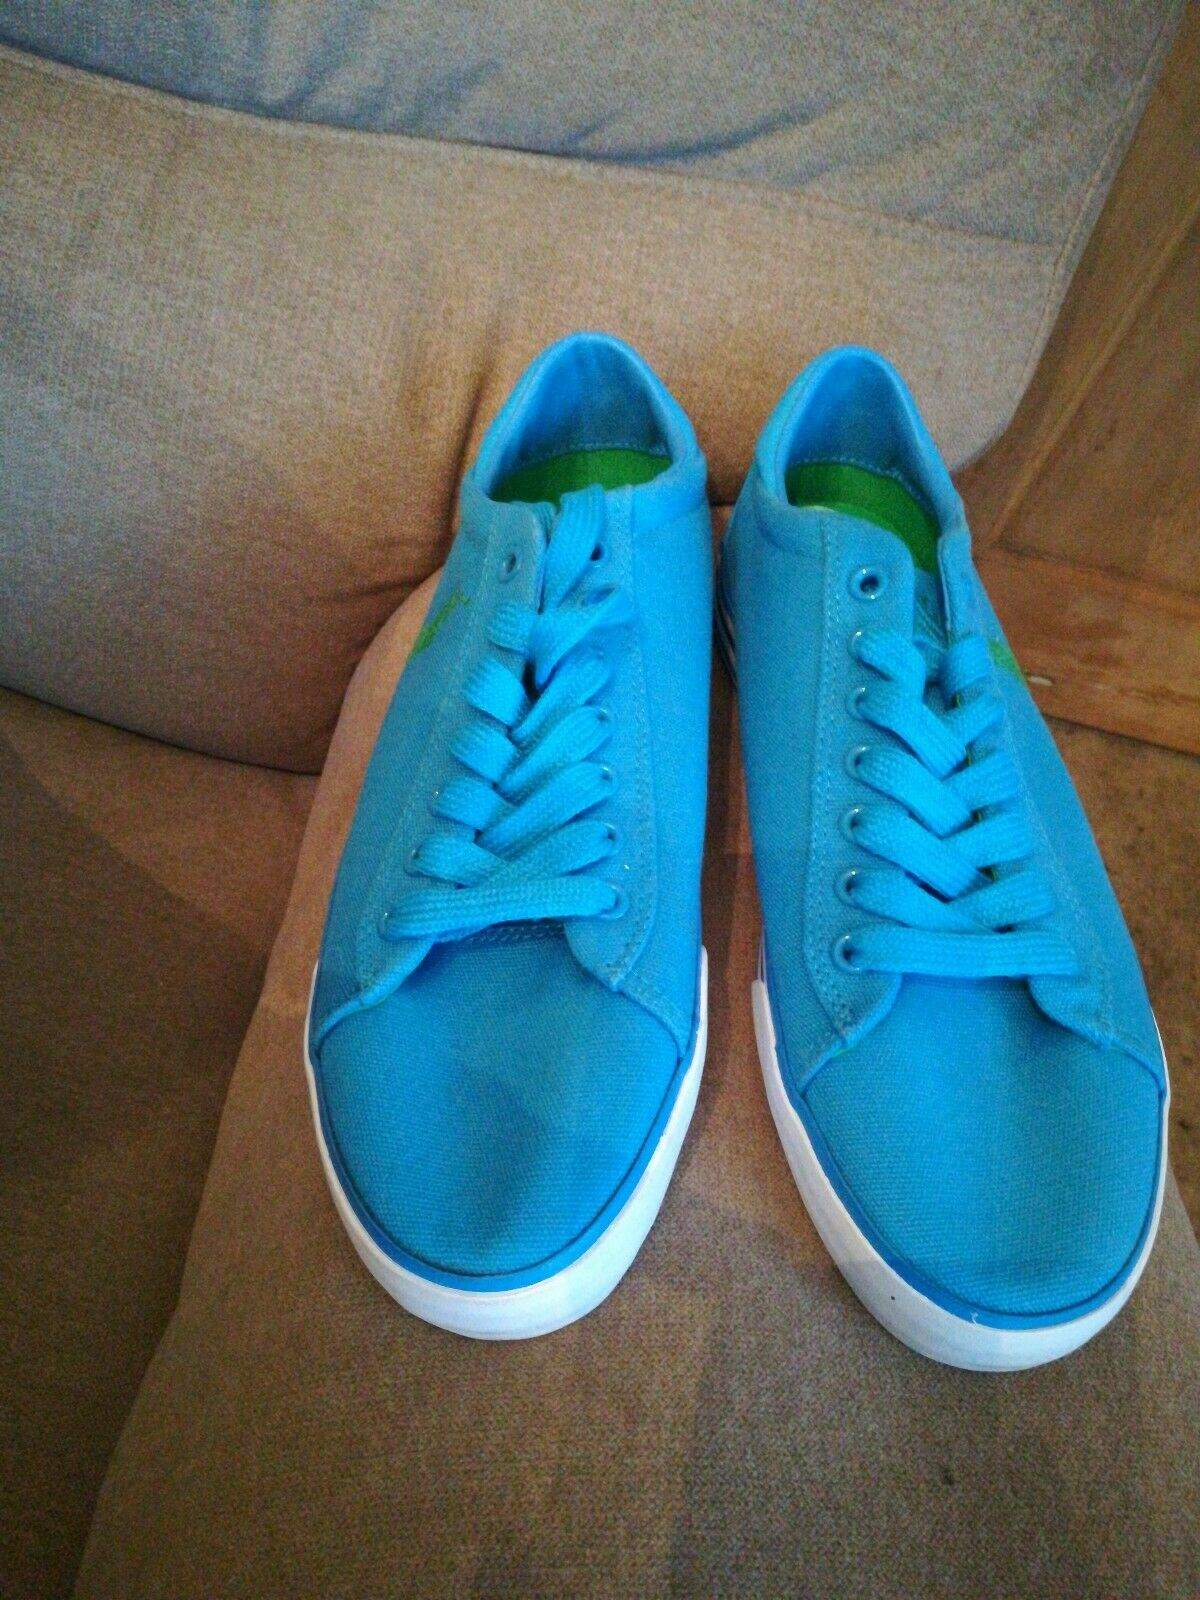 BNWT RALPH LAUREN POLO CANVAS DECK SHOES TURQUOISE WITH GREEN EMBROIDERY...